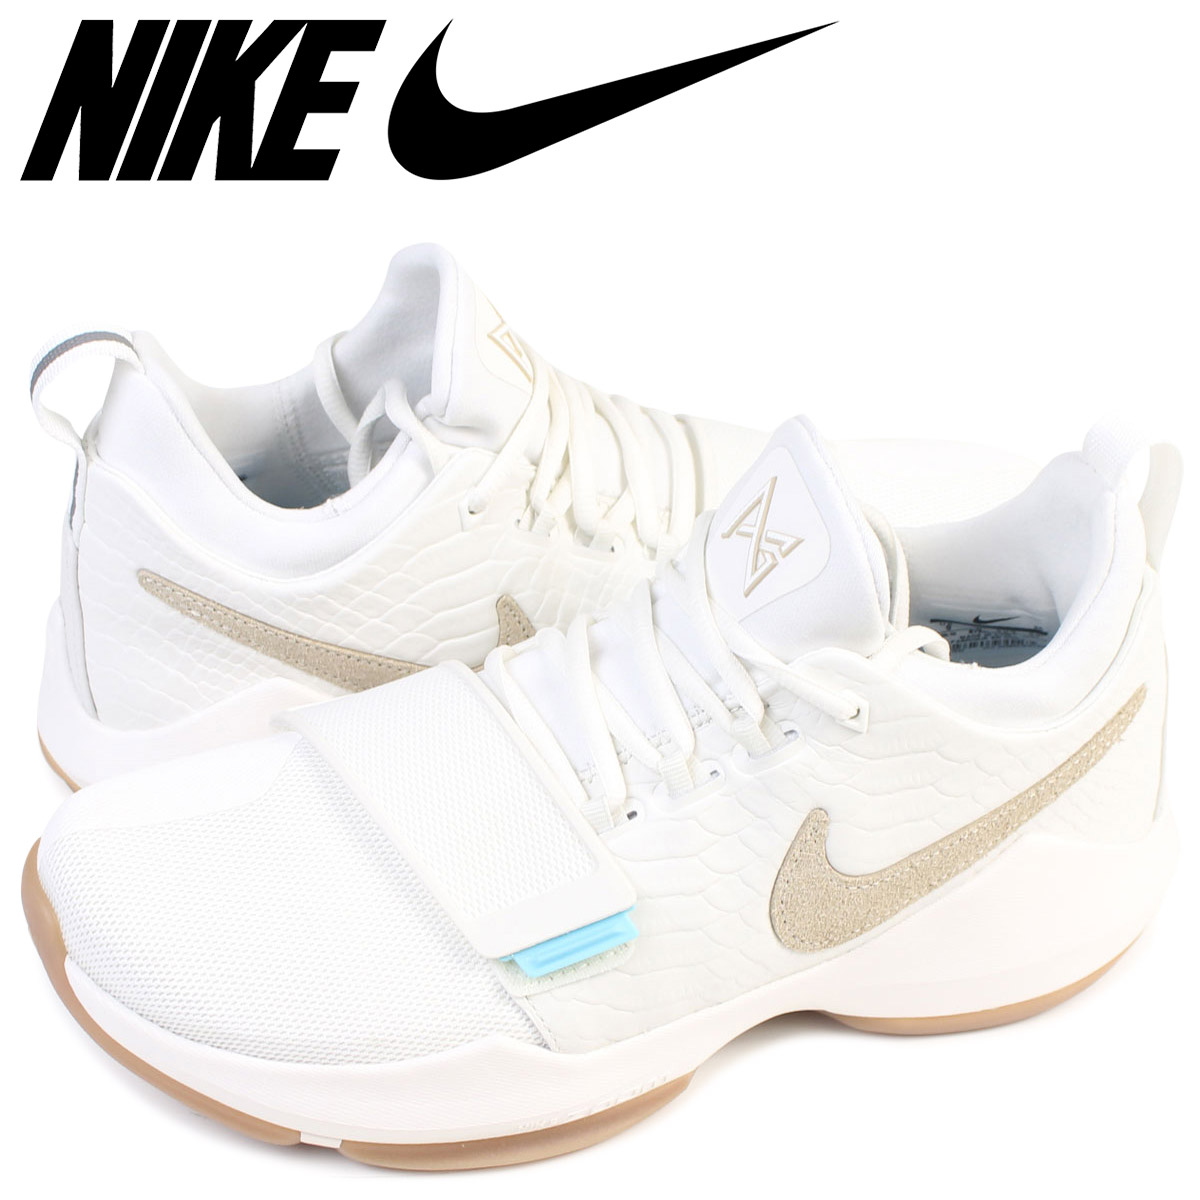 NIKE Nike PG1 sneakers PG 1 EP SUMMER men 878,628 110 shoes white white pole George